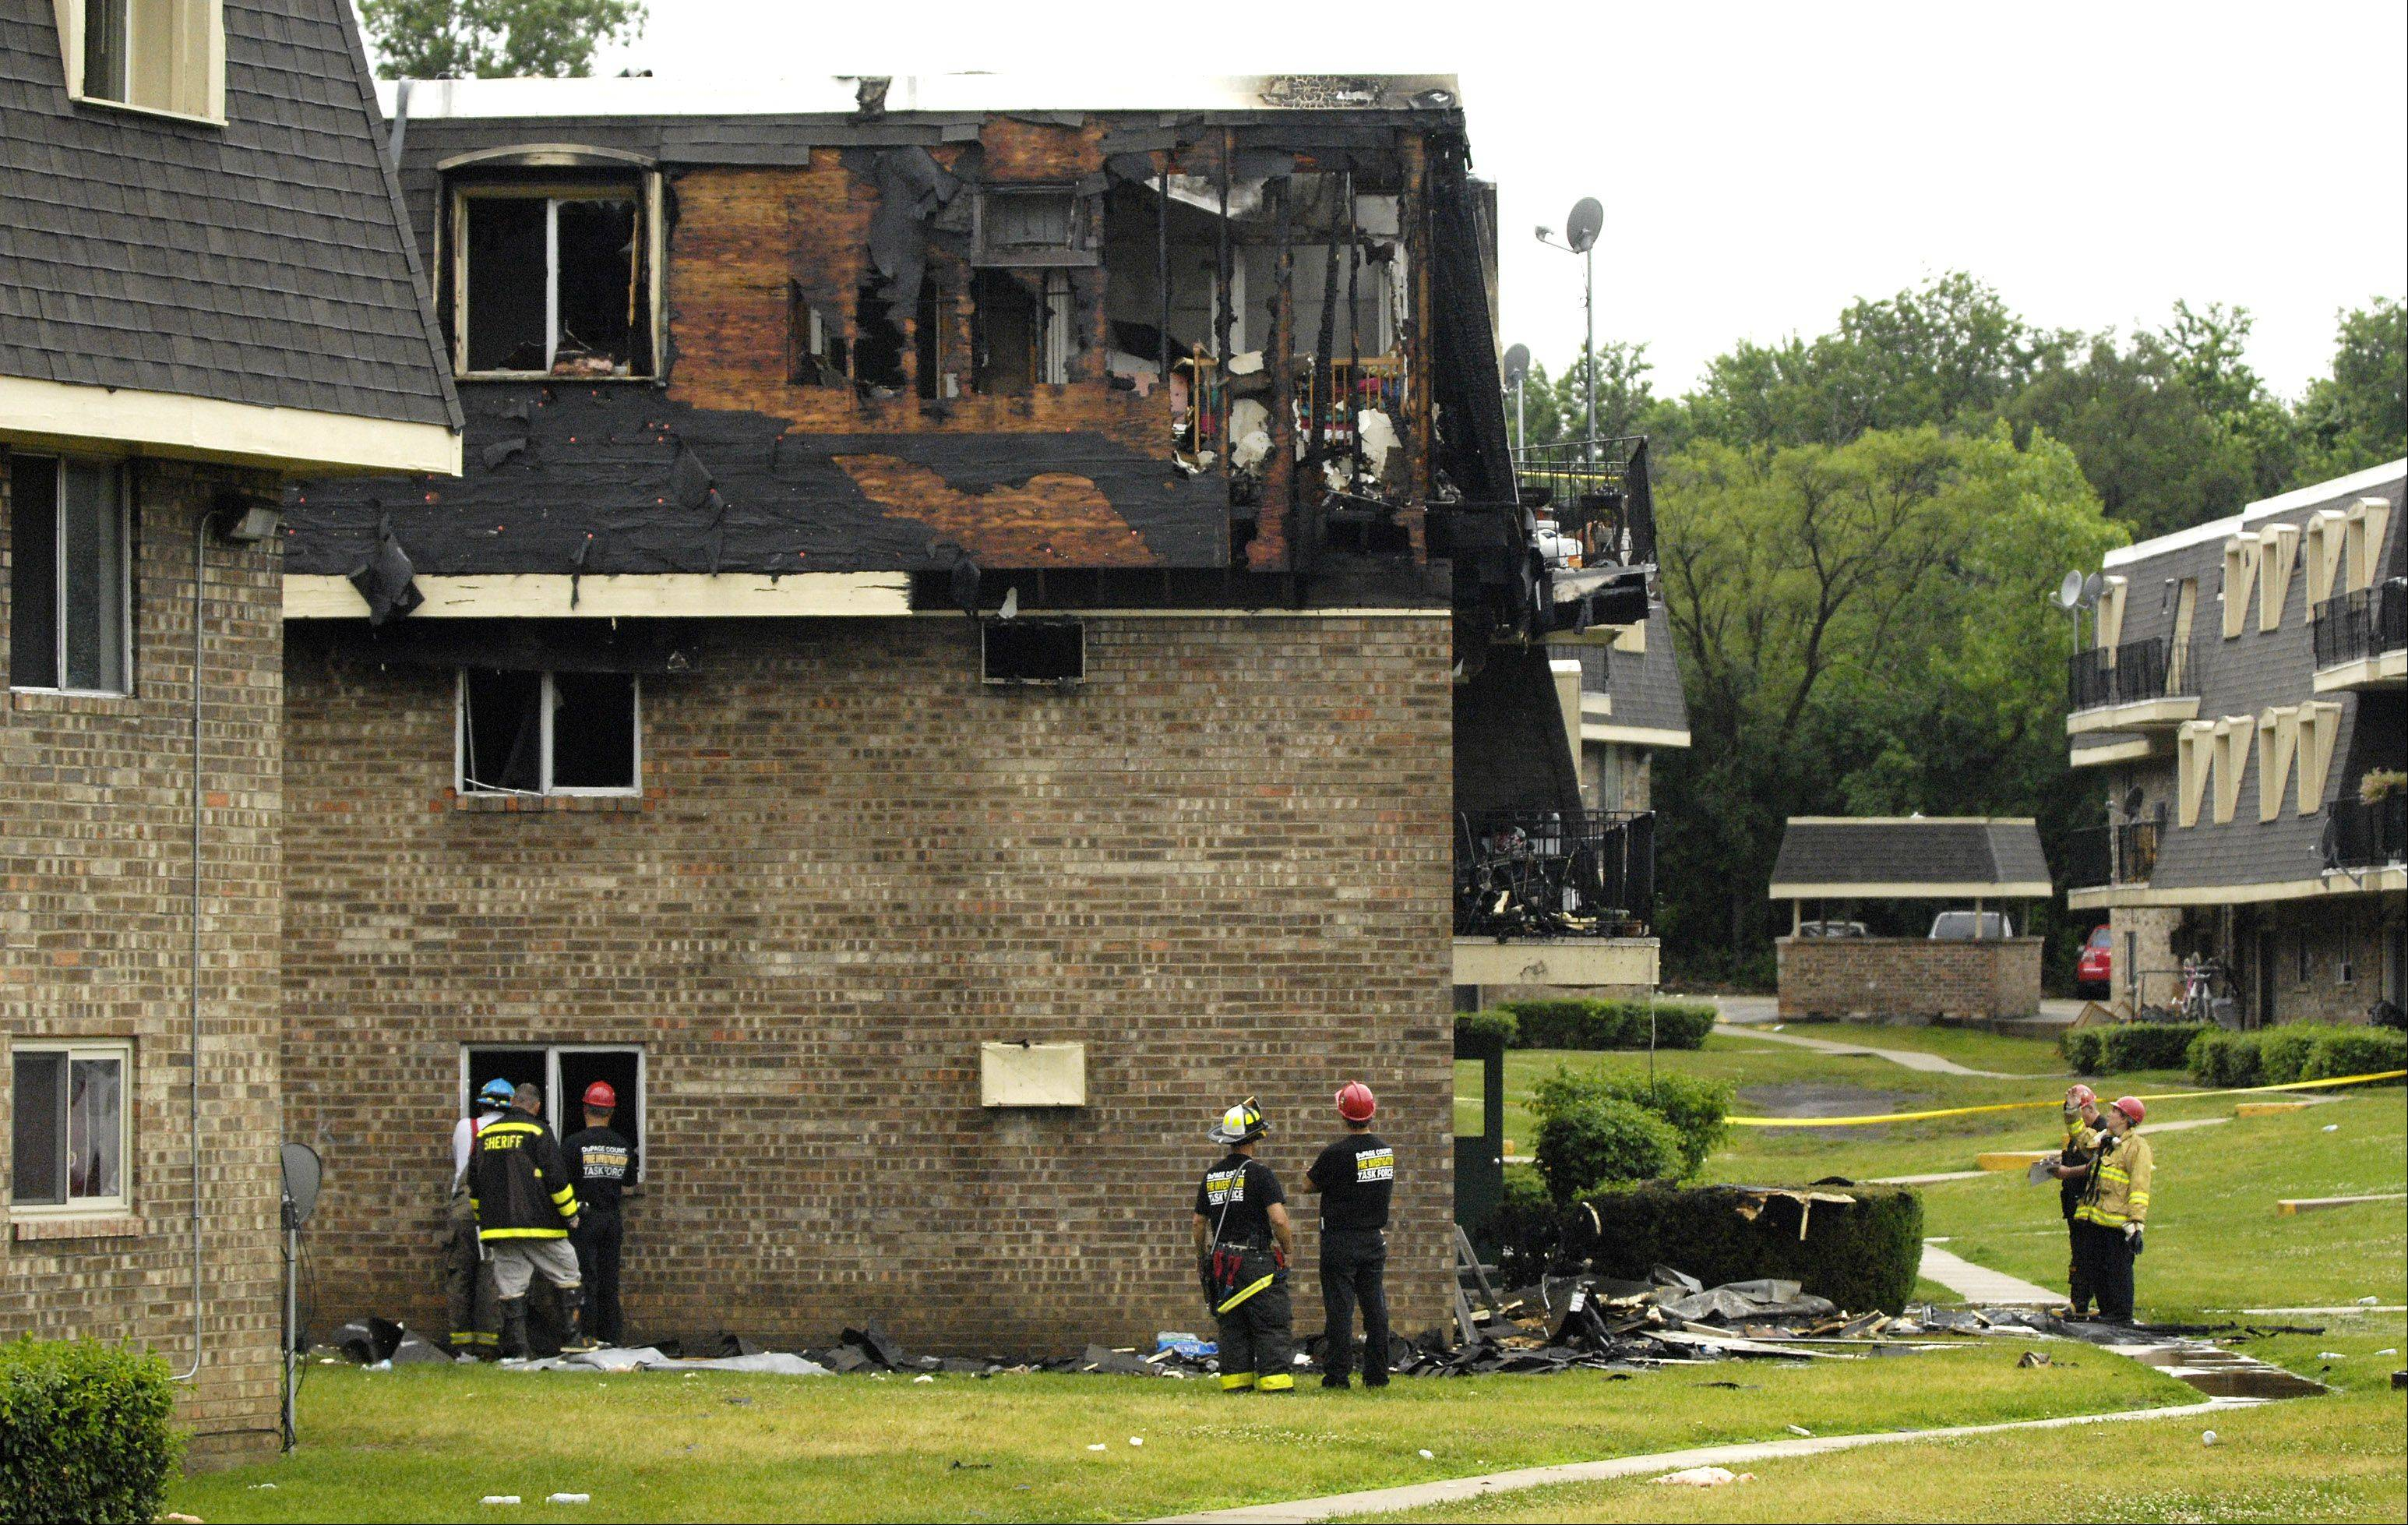 Fire investigators say an electrical malfunction sparked an early Monday morning fire on the 500 block of Carriage Drive in the Aspen Ridge Apartment complex in West Chicago.